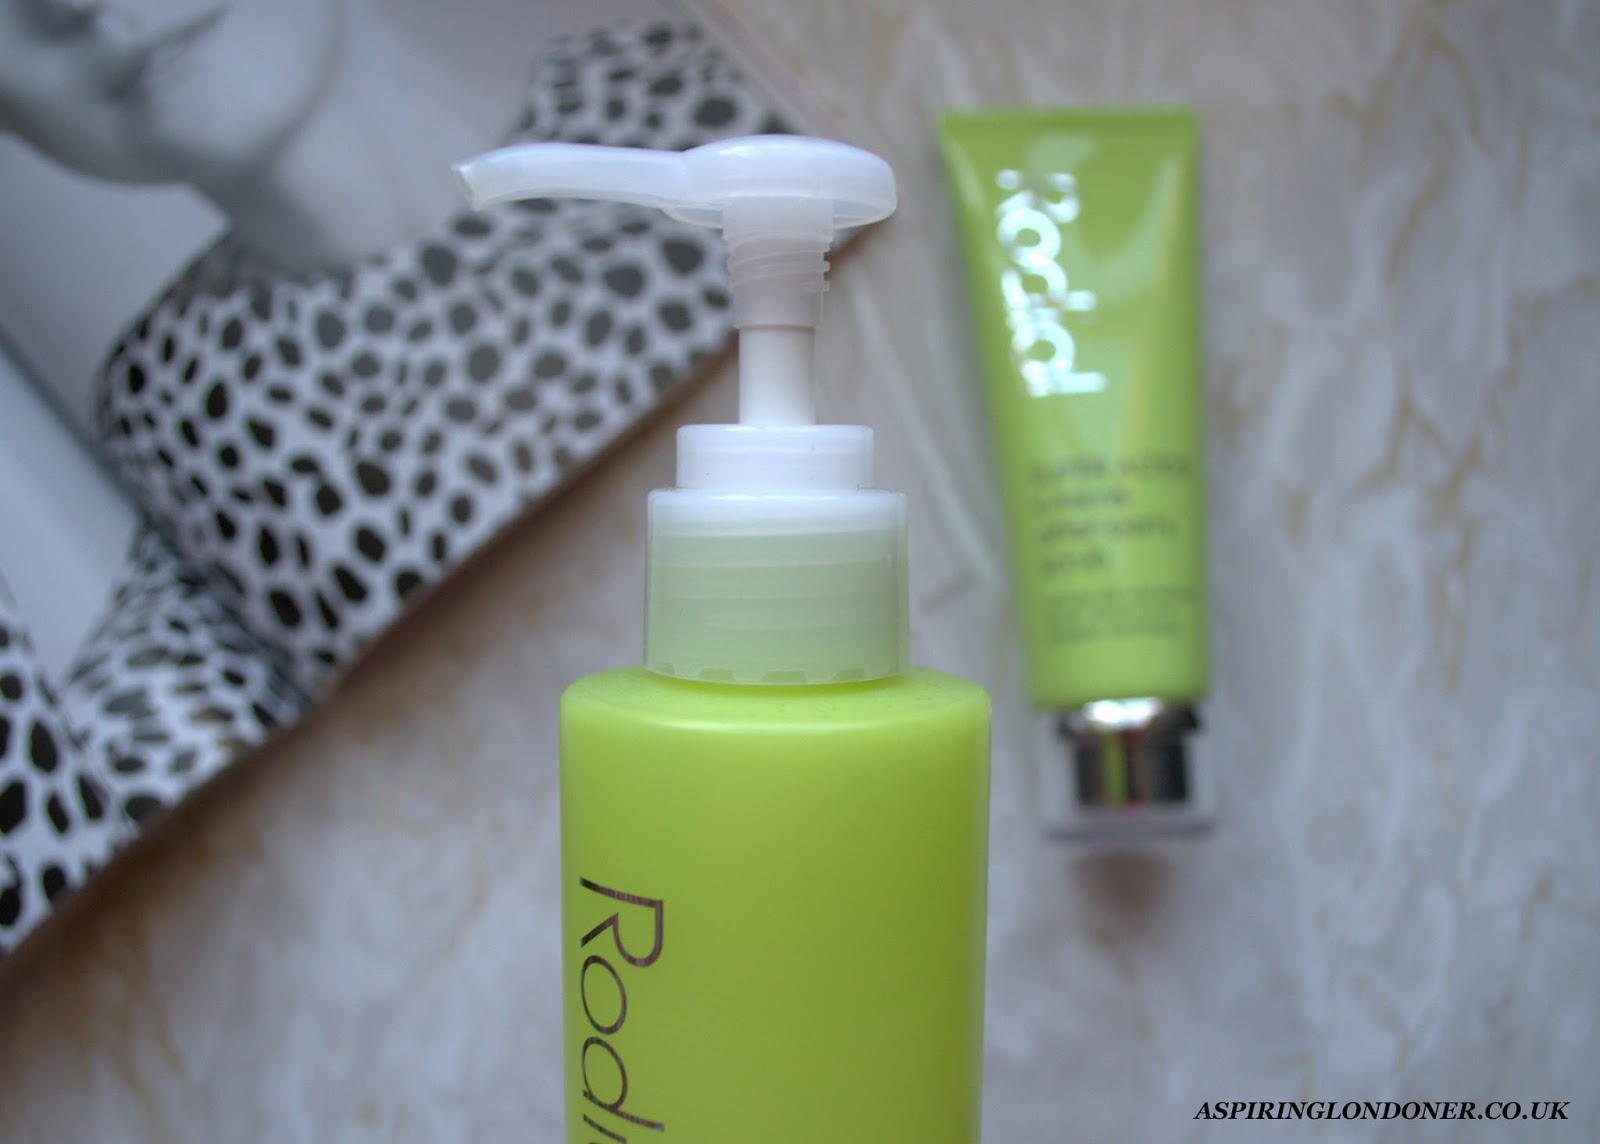 Rodial Super Acids X-treme Exfoliating Glycolic Cleanser Review - Aspiring Londoner